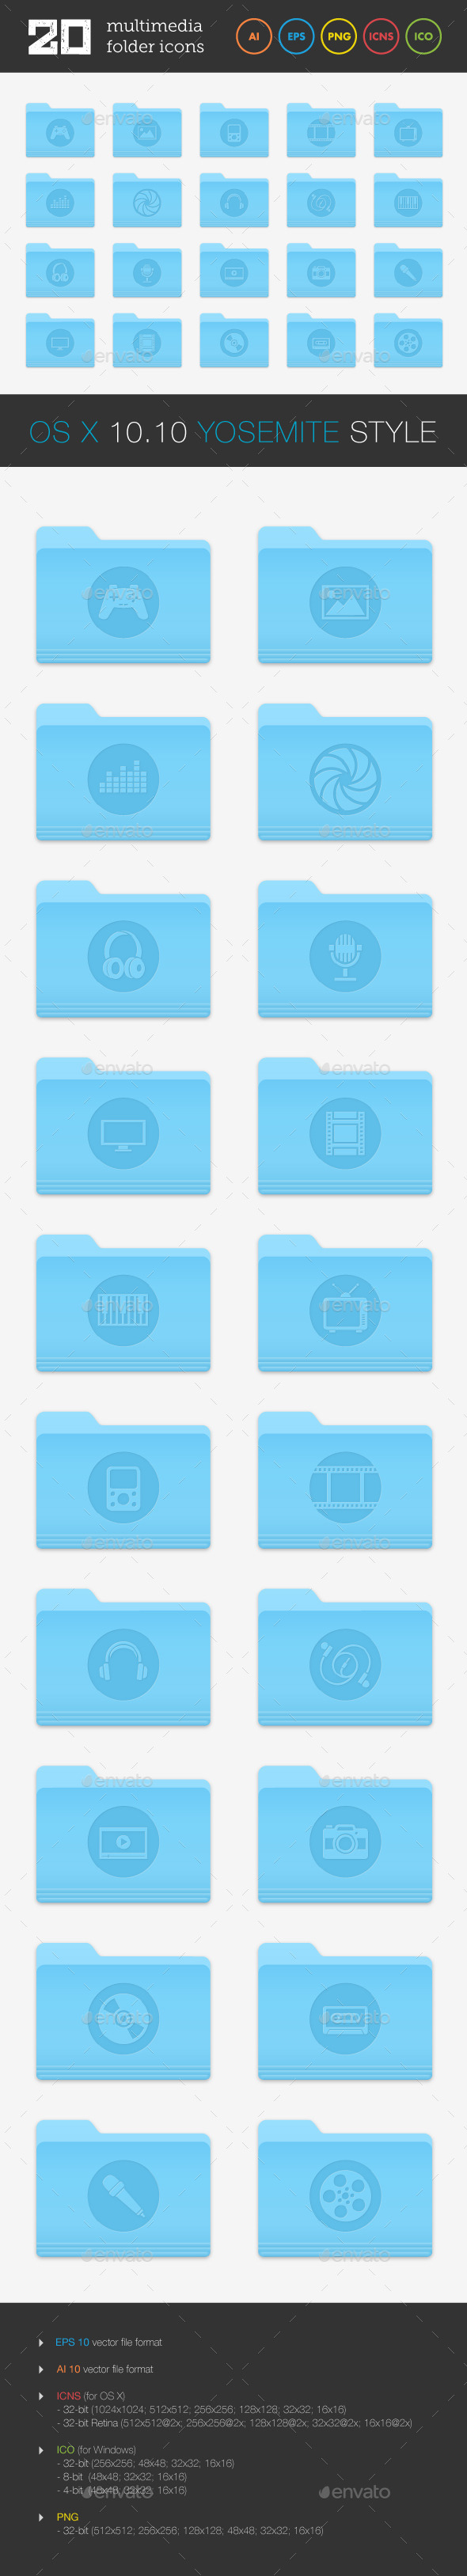 GraphicRiver Multimedia Folder Icons Set 9162195